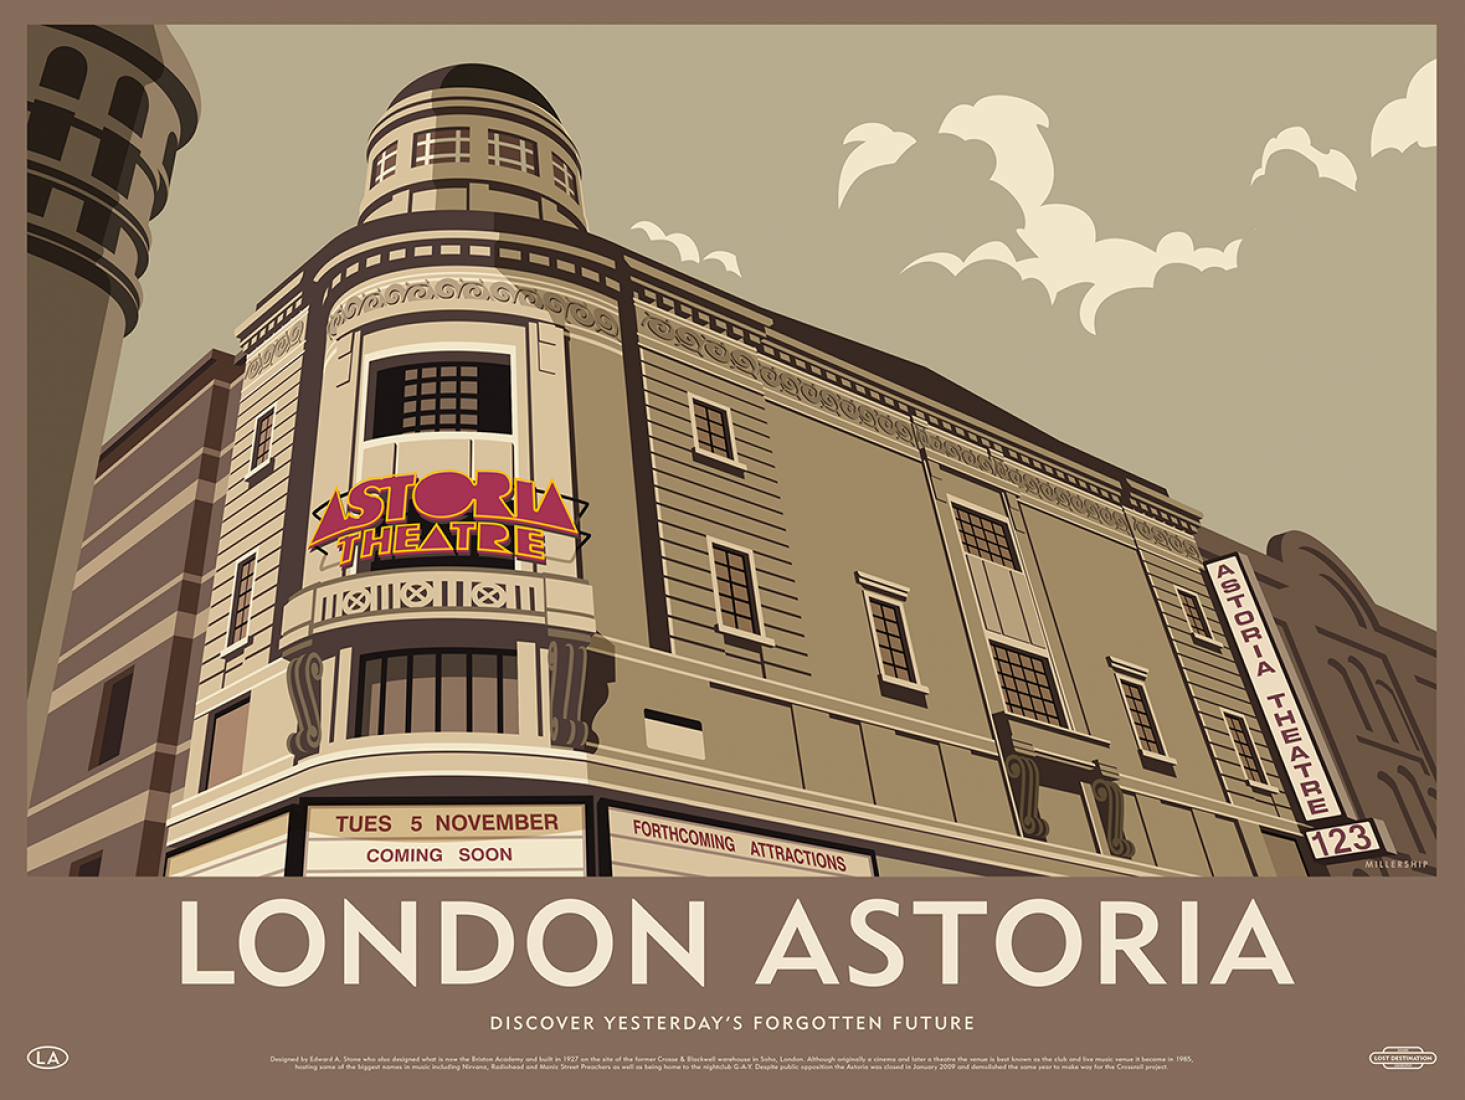 Illustration of the London Astoria. Lost Destination by Dorothy and Stephen Millership.